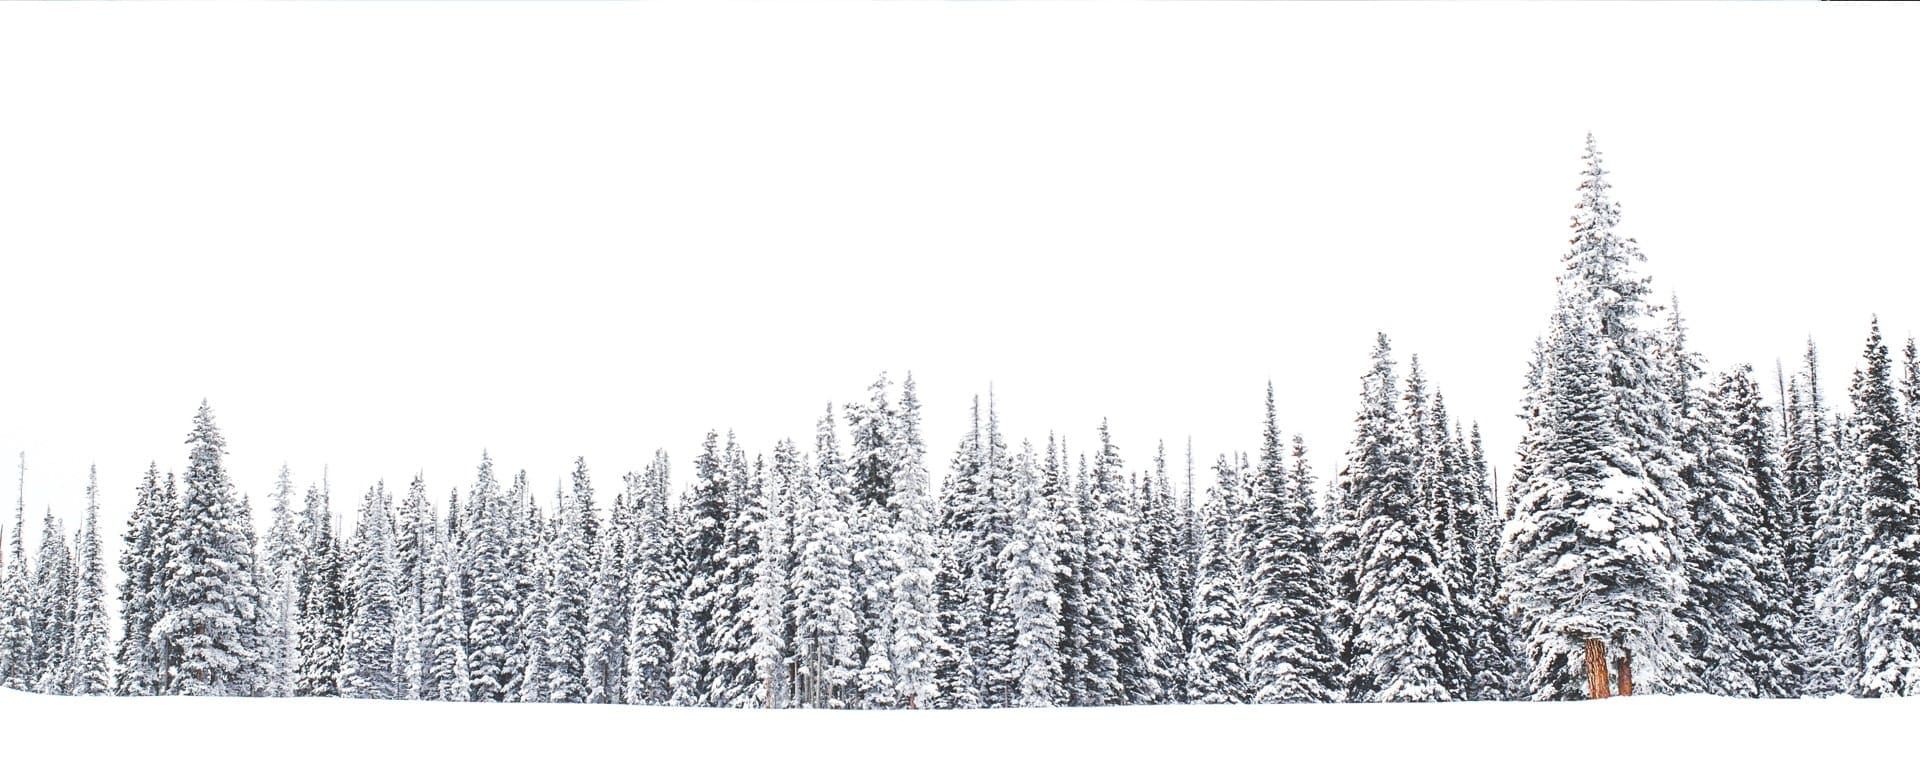 Snow-covered pine and larch trees